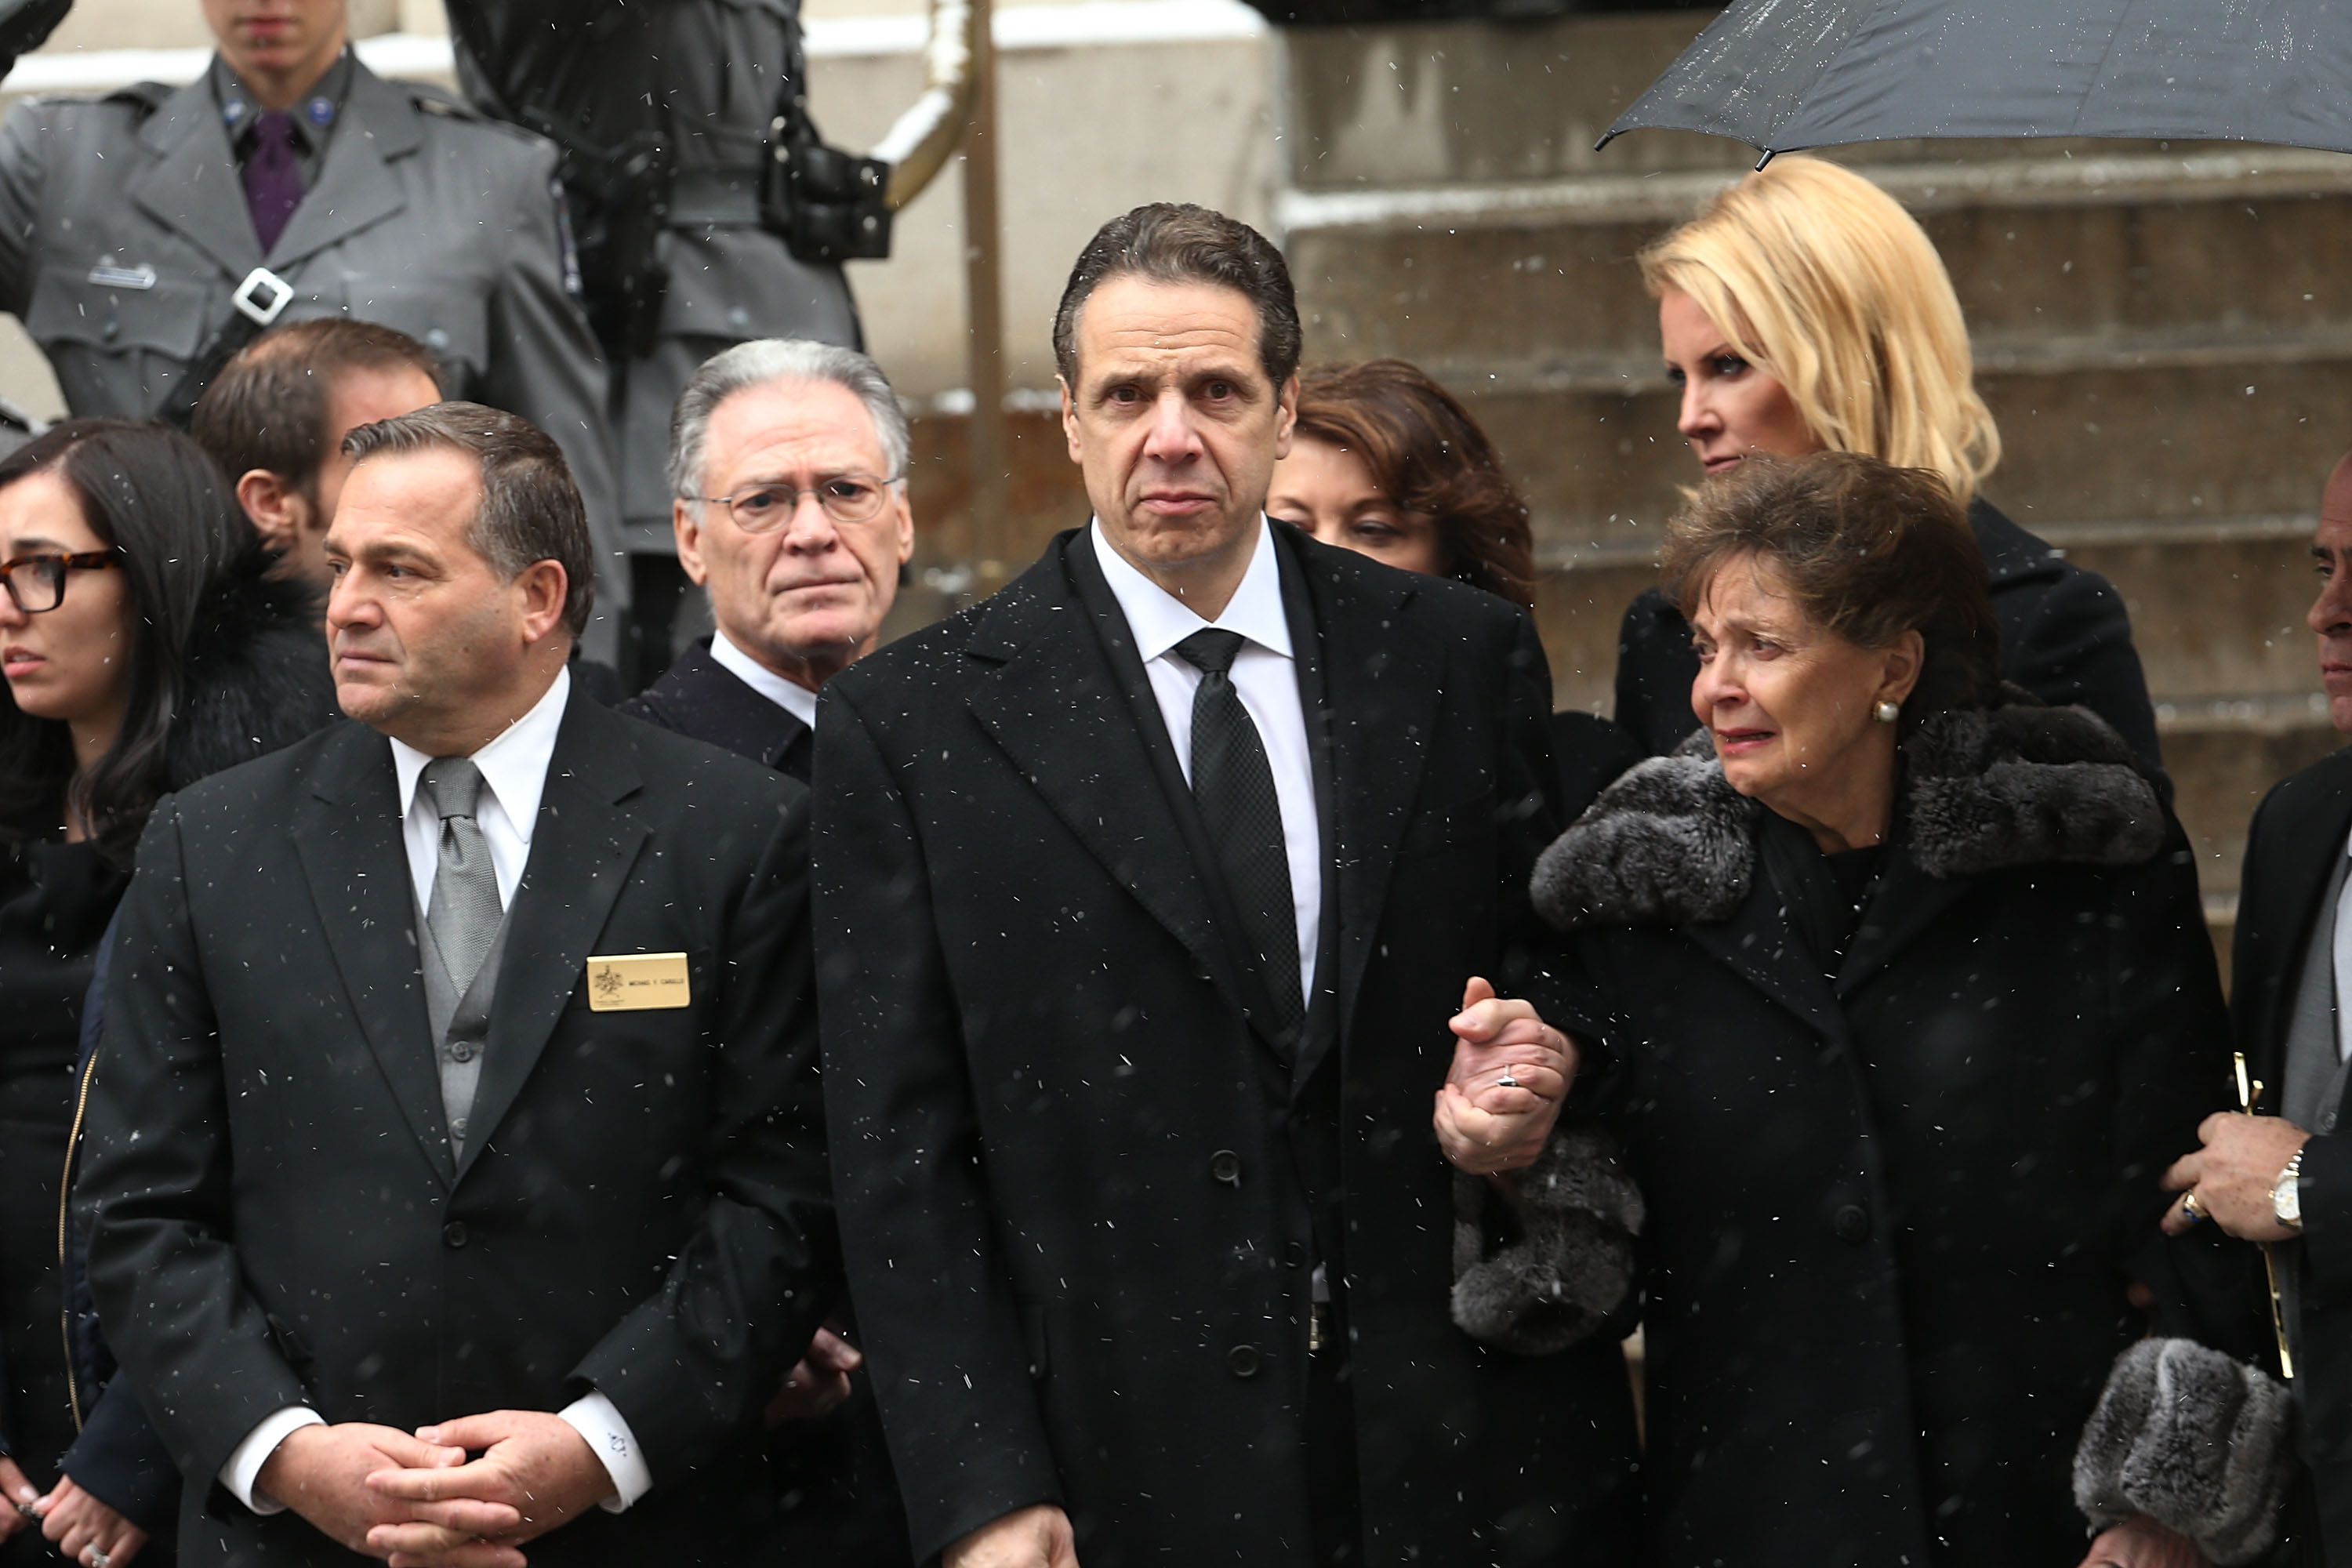 Gov. Andrew Cuomo at the funeral for his father, Mario Cuomo. (Photo: Spencer Platt/Getty Images)